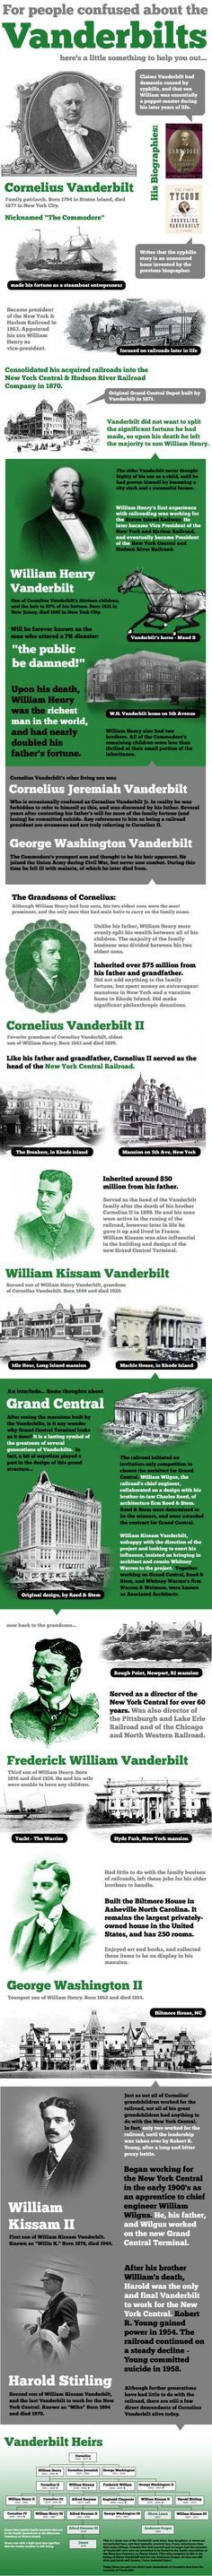 Infographic | Vanderbilts Explained | Famous American Families | Gilded Age | #american #history #people